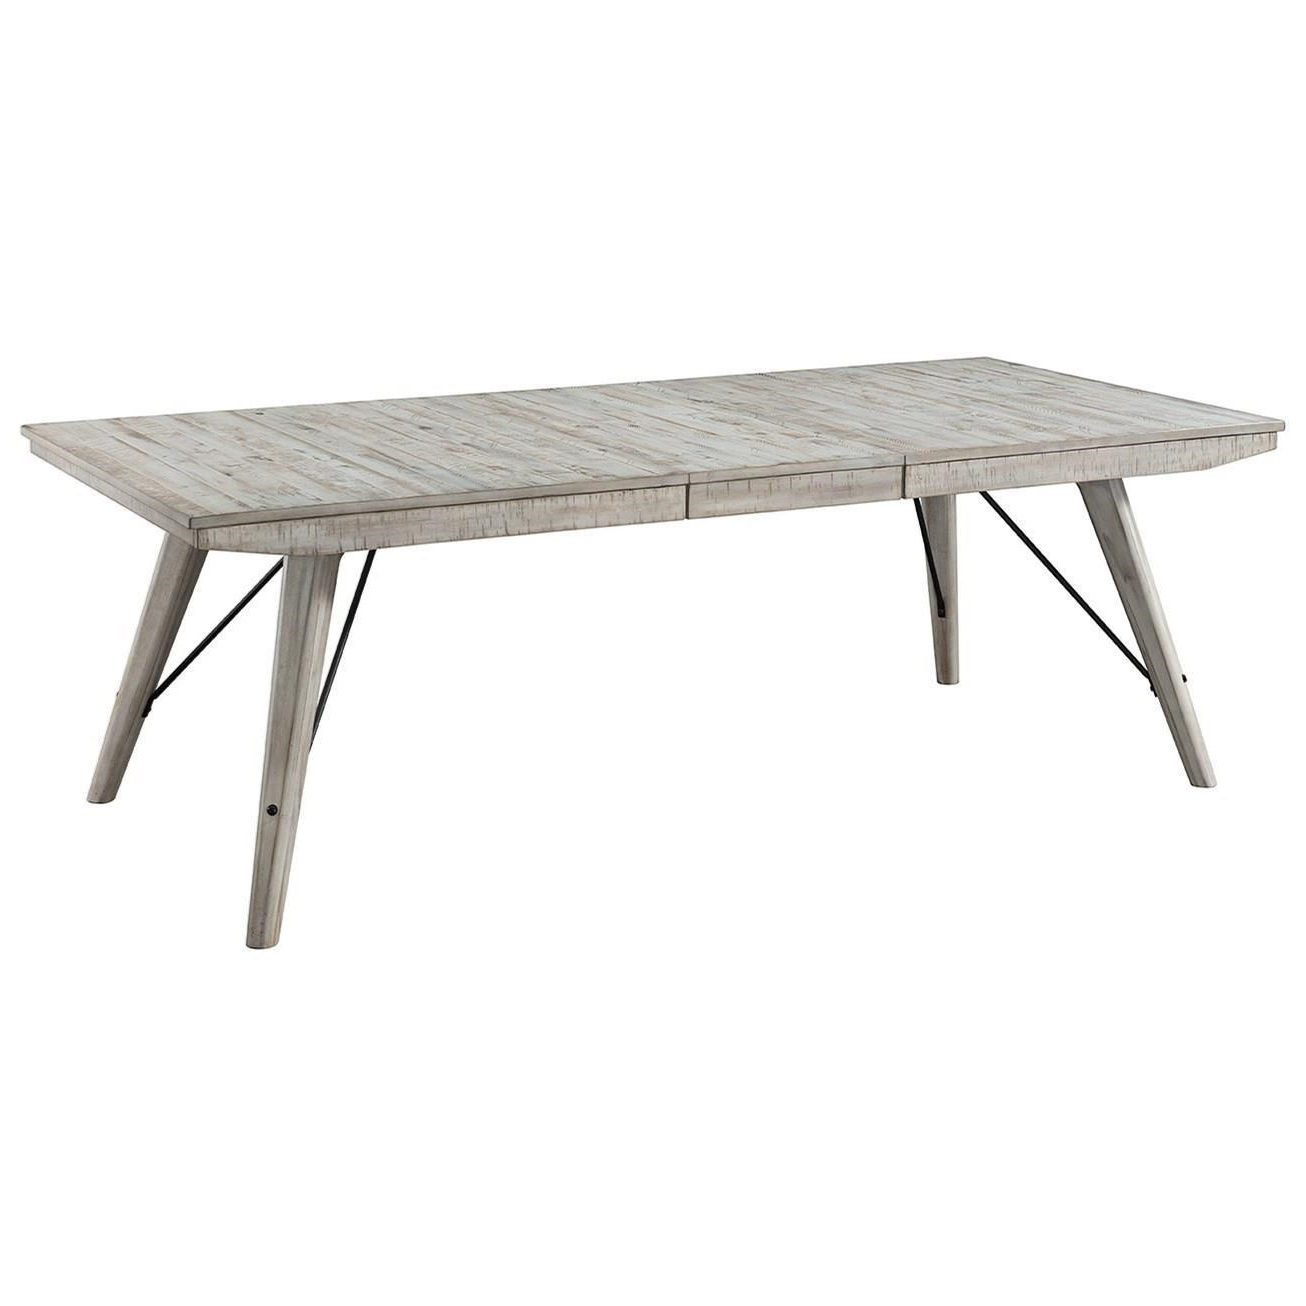 Widely Used Intercon Modern Rustic Contemporary Rectangular Dining Table Throughout Contemporary Rectangular Dining Tables (View 21 of 30)